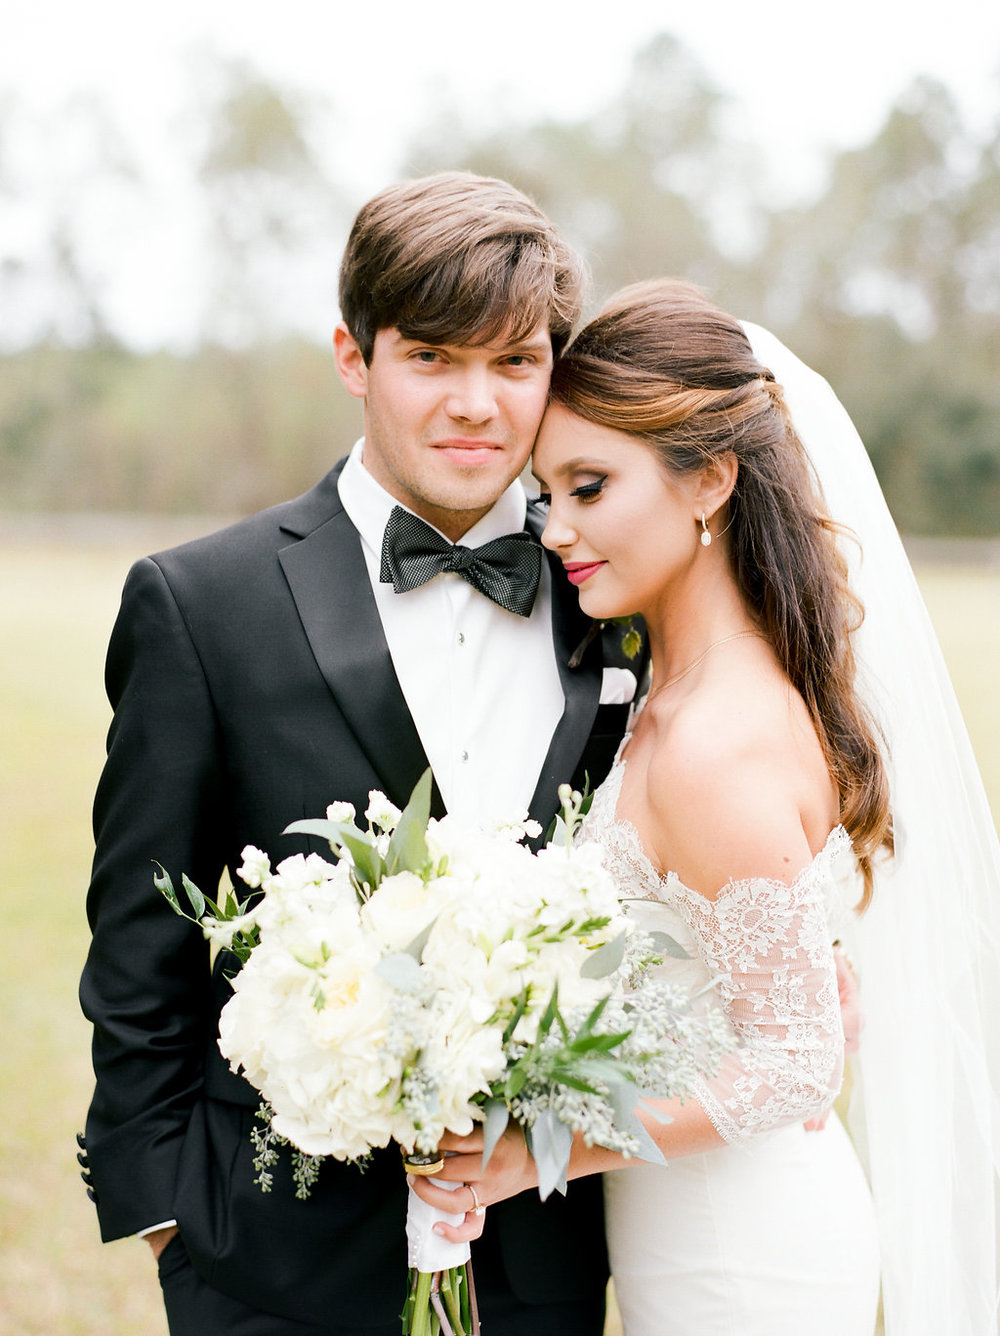 mps-photographie-nicole-miller-dakota-savannah-bridal-boutique-ivory-and-beau-bridal-boutique-savannah-weddings-savannah-bride-southern-bride-savannah-weddings-adele-amelia-veil-14.jpg